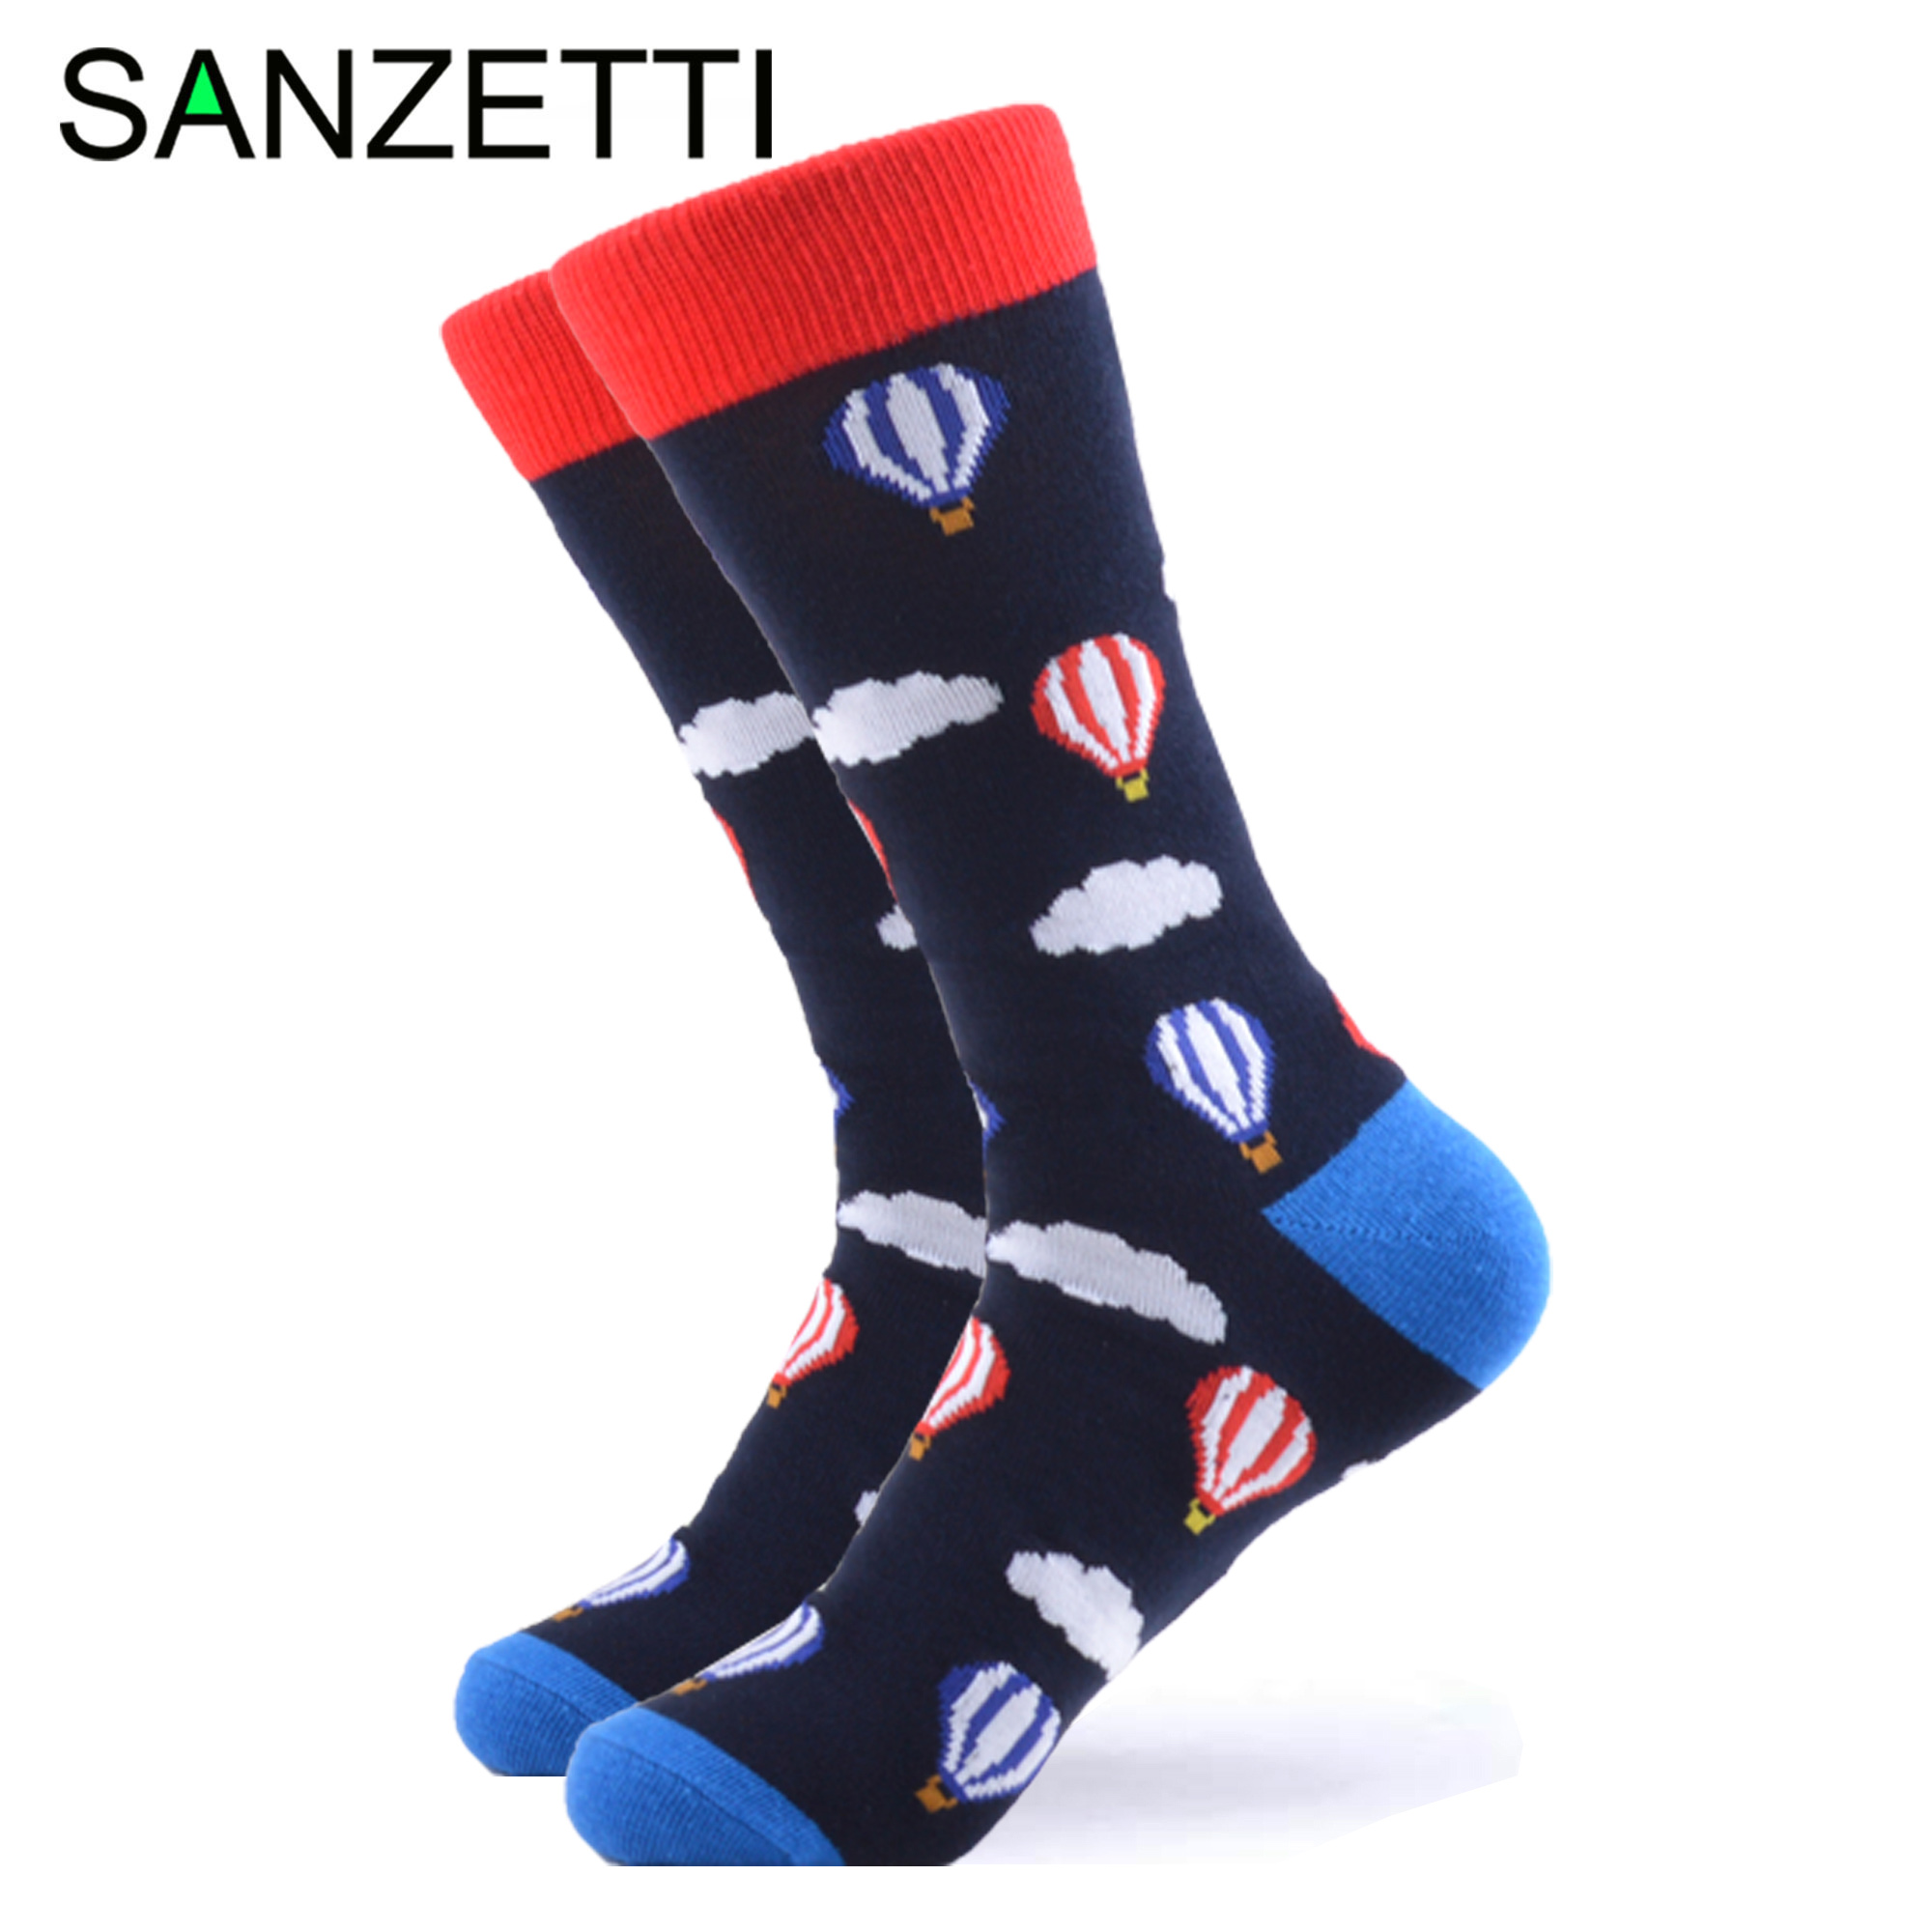 SANZETTI 1Pair New Style Happy Socks High Quality Men's Colorful Animals Combed Cotton Pattern Novelty Gift Wedding Dress Socks